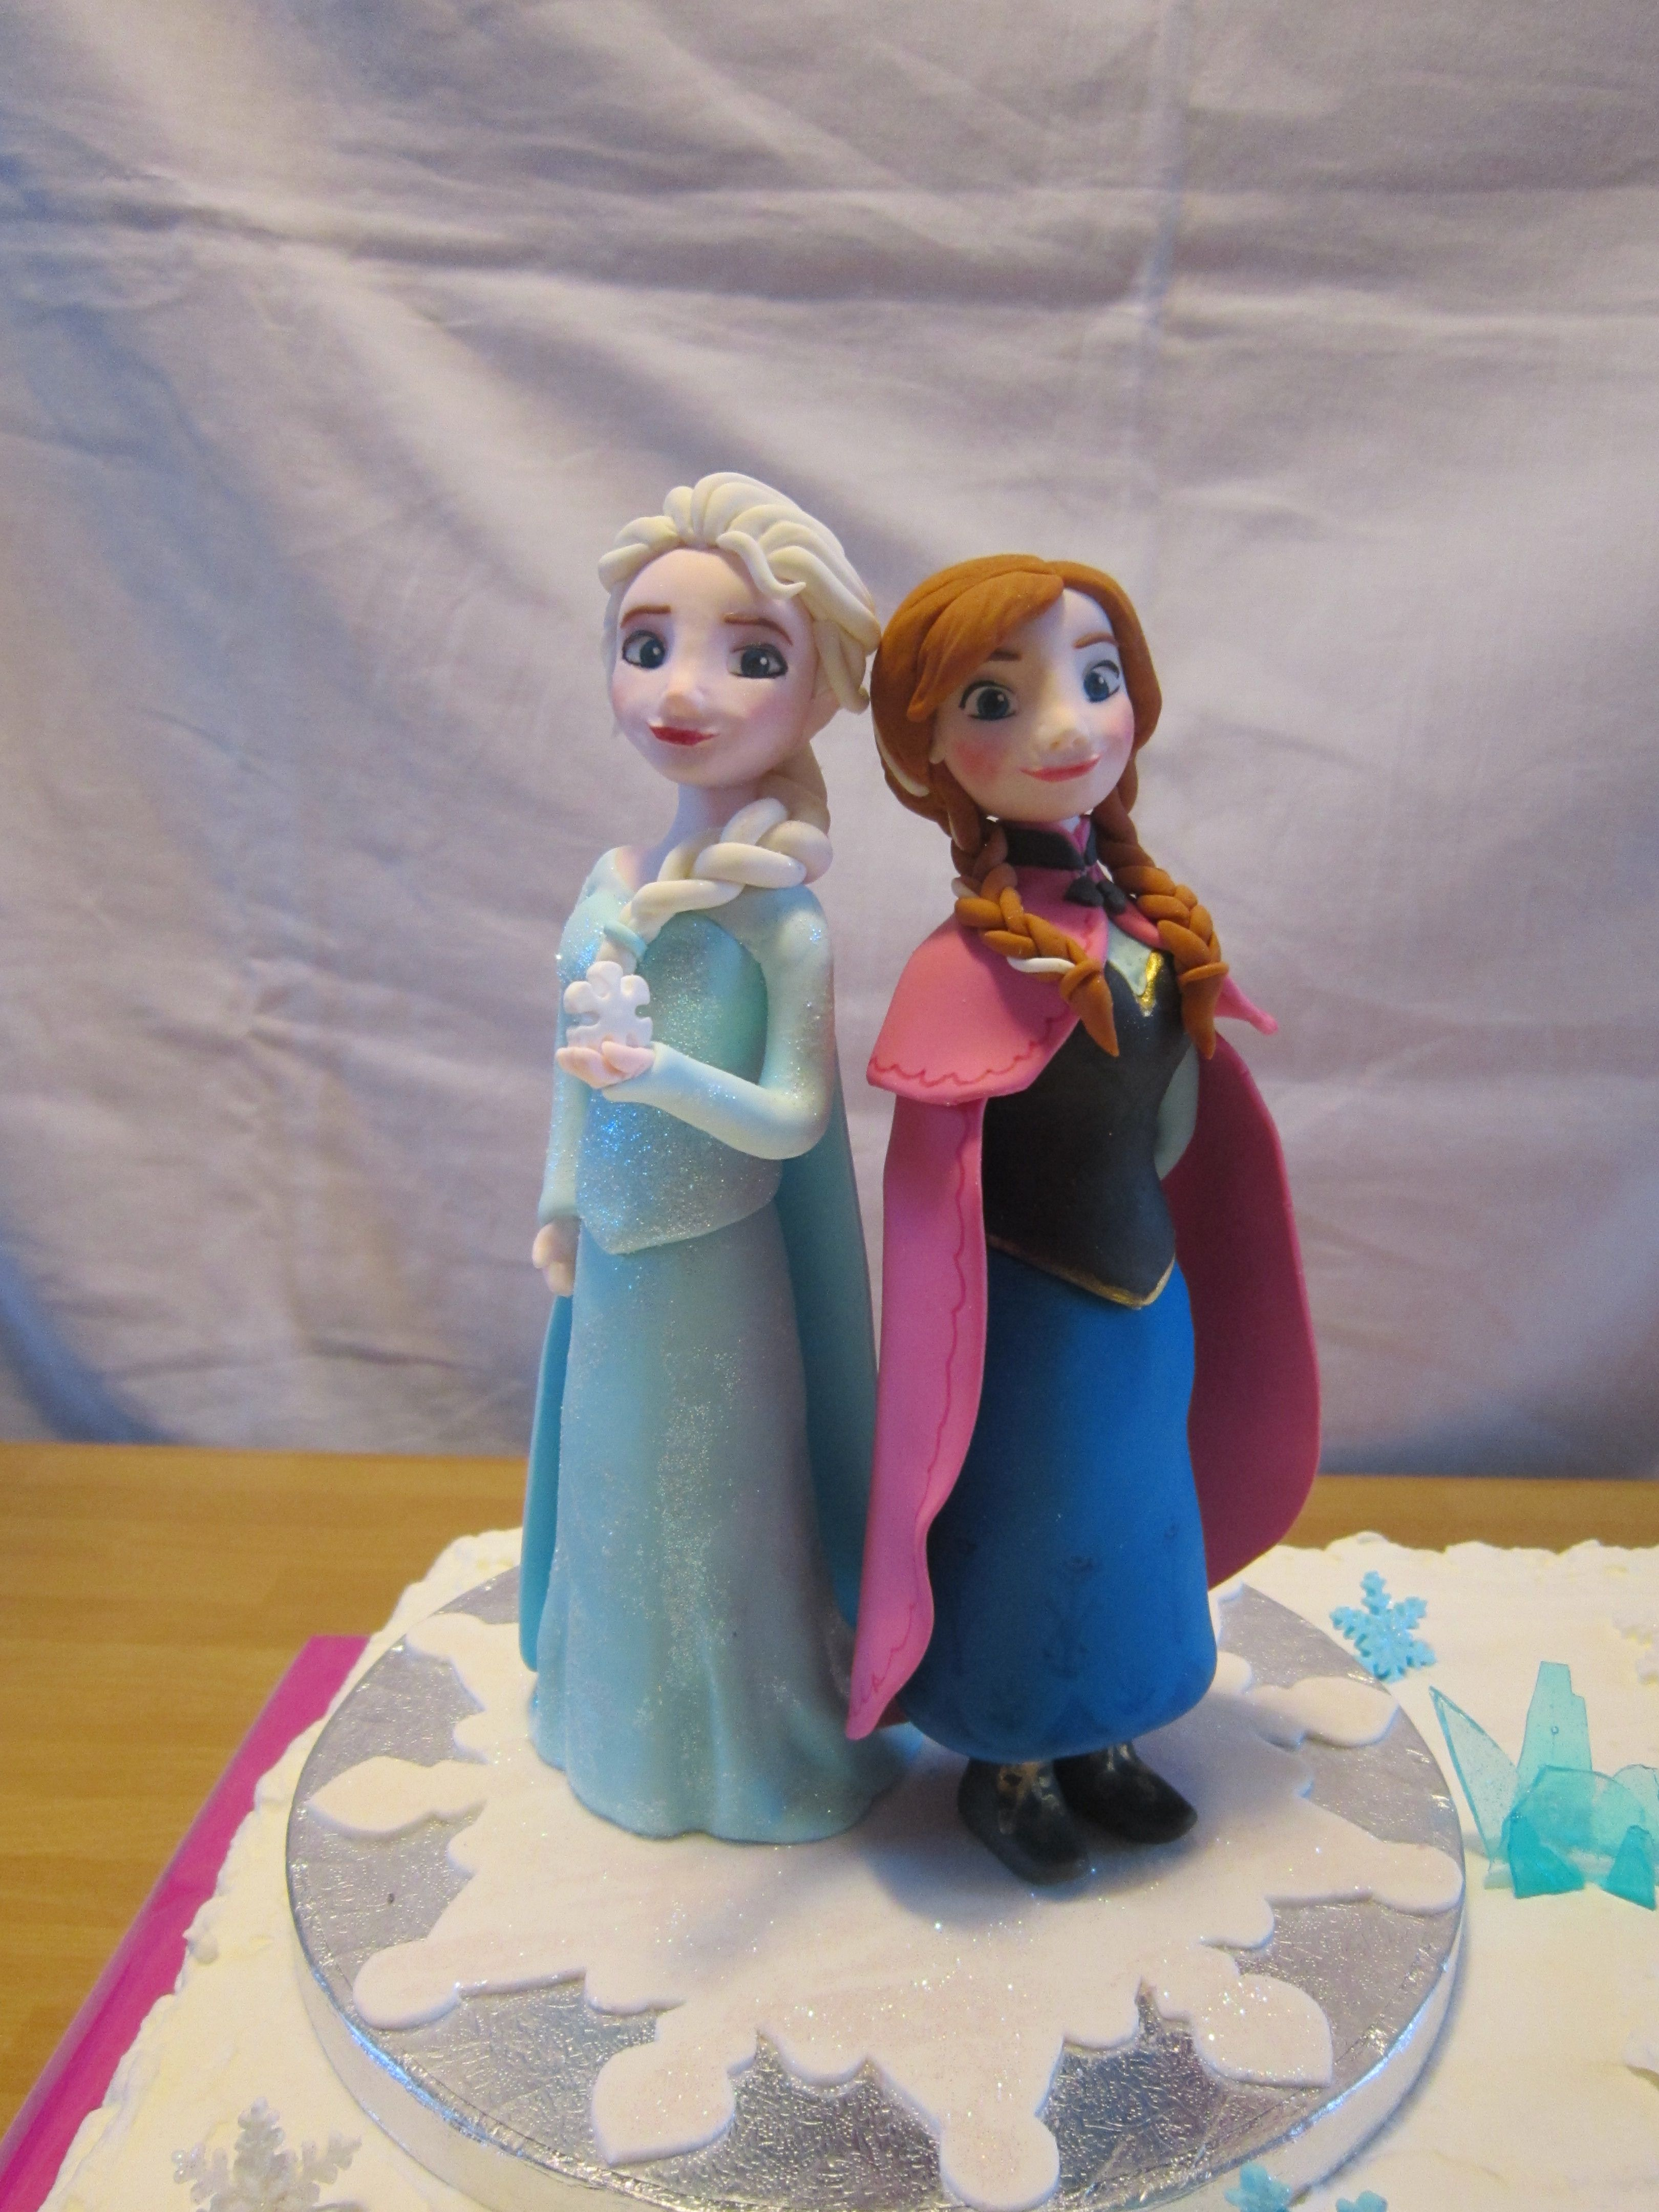 Sugarpaste Elsa and Anna from Disney Frozen frozen cakes and party